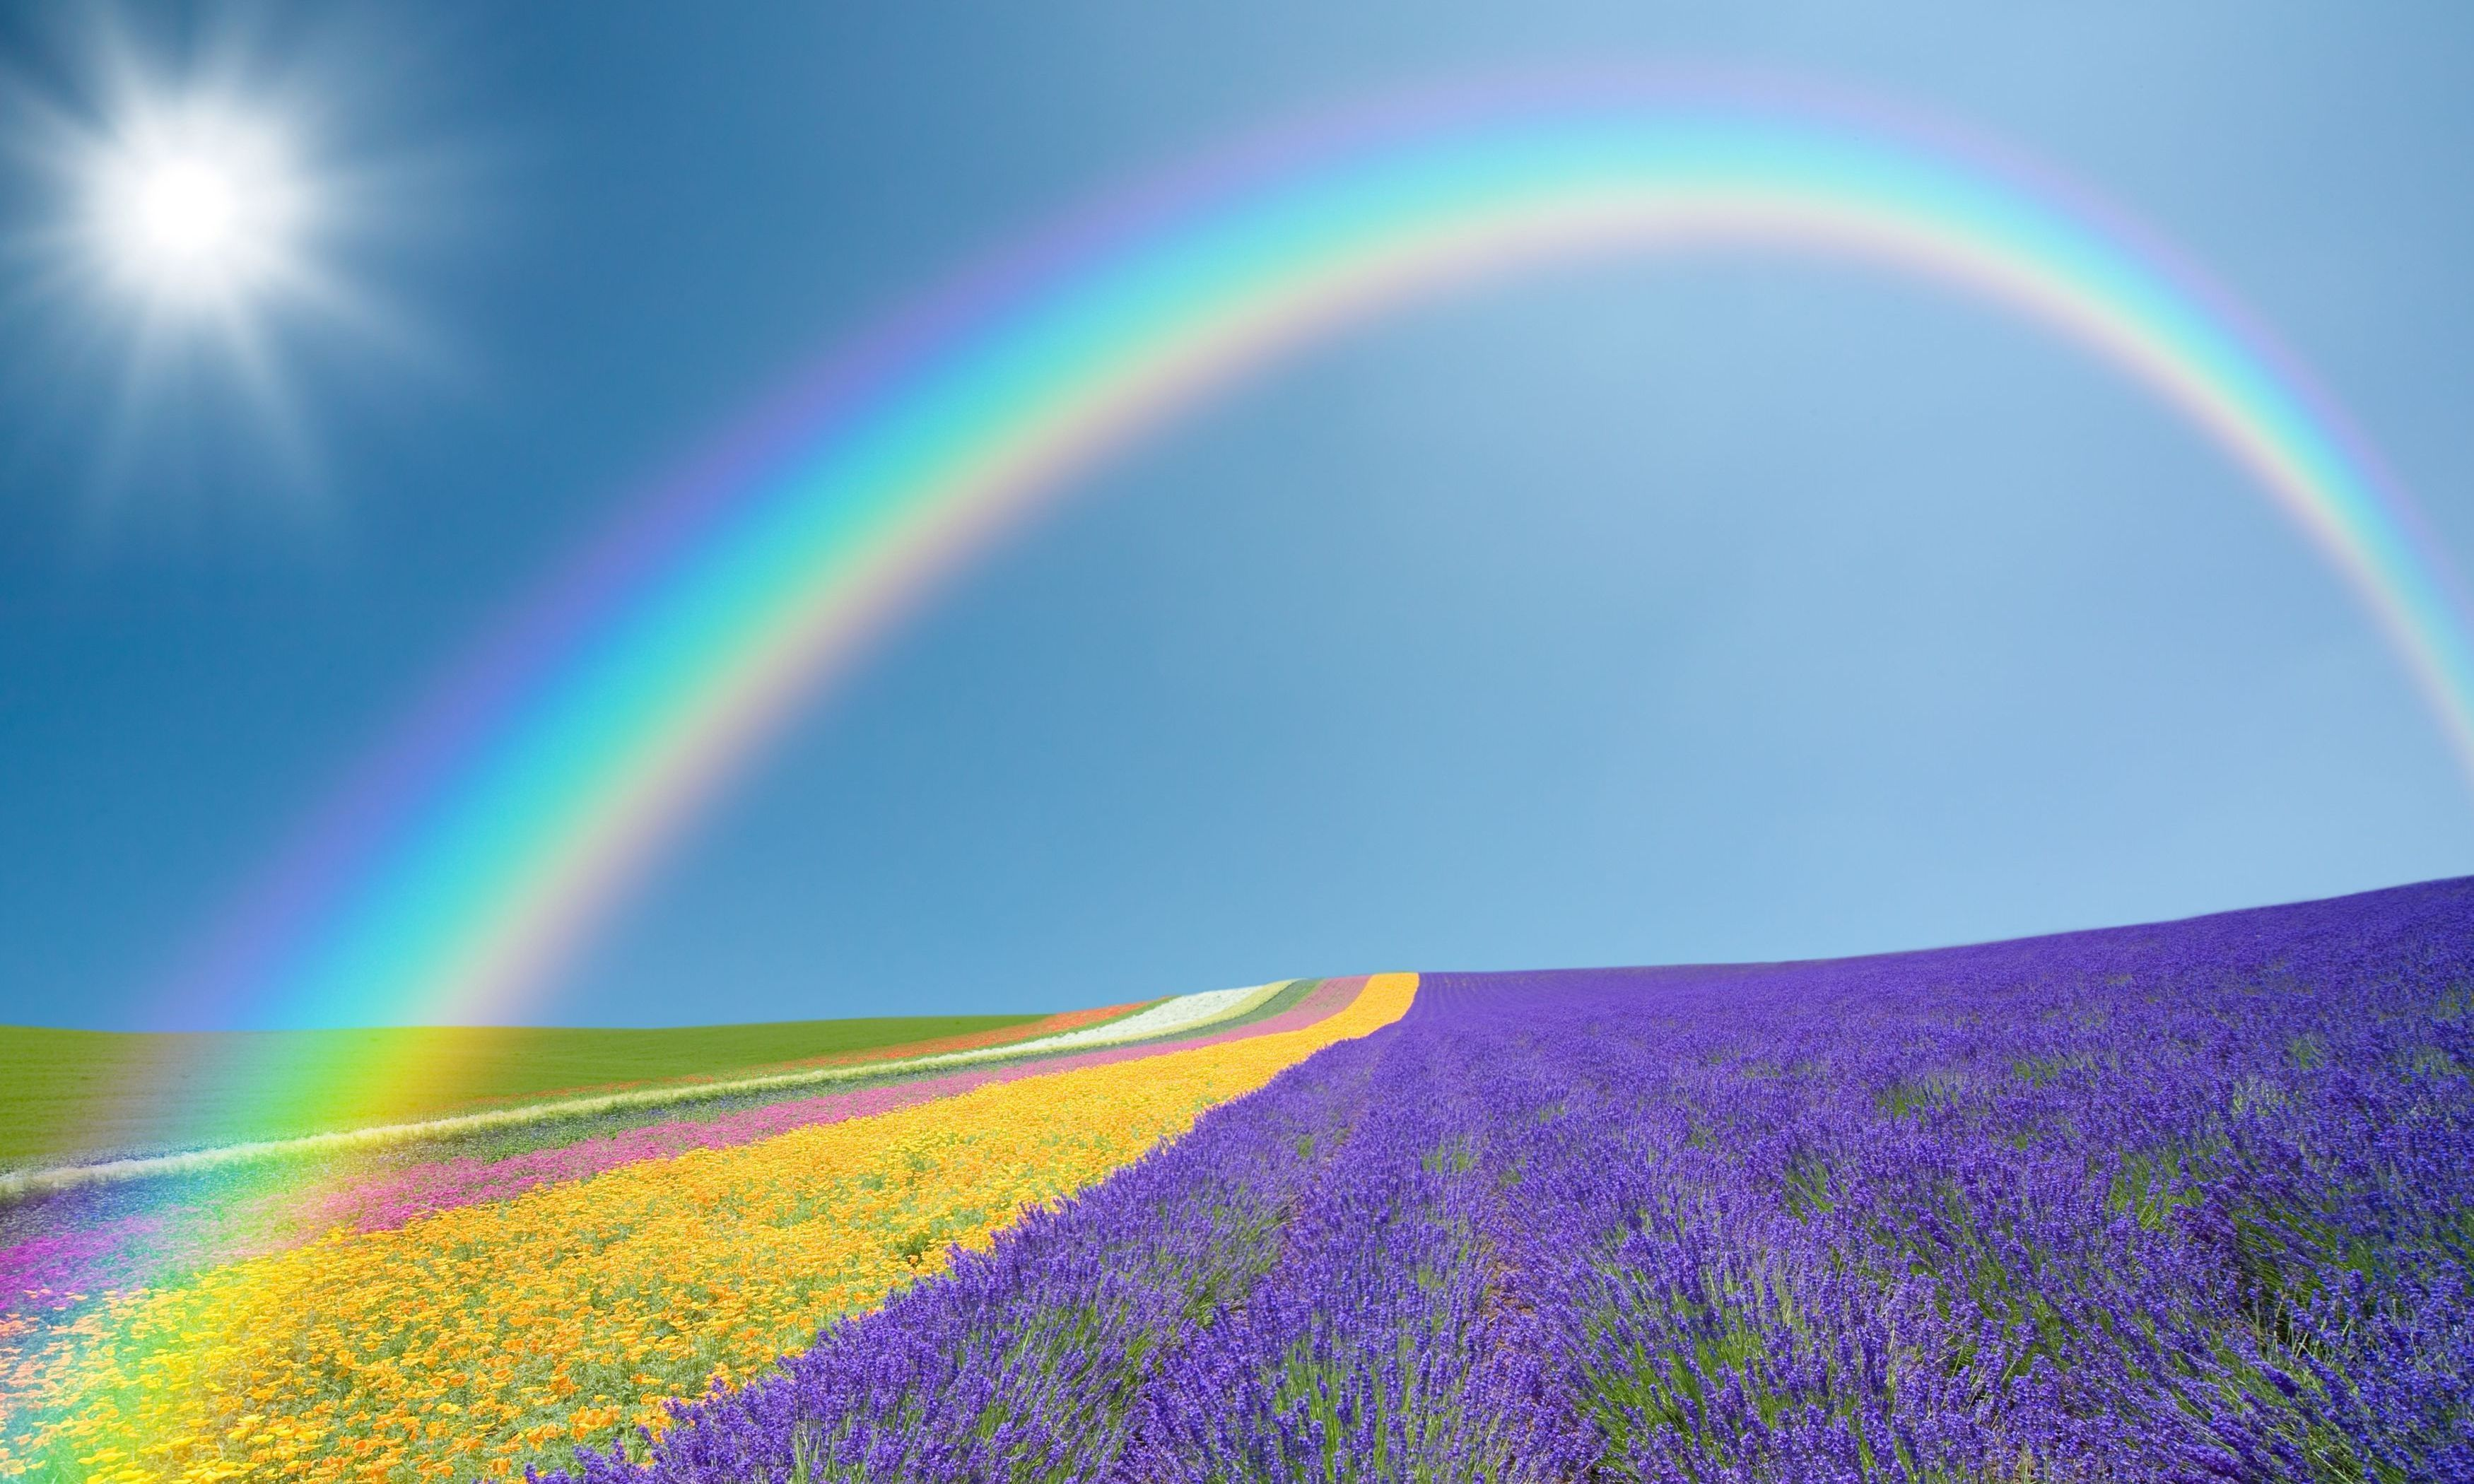 Rainbow Sky Desktop Background Flowers Purple Yellow Green Rainbow Sky Sun Wallpaper Background Sunshine Wallpaper Rainbow Images Rainbow Sky